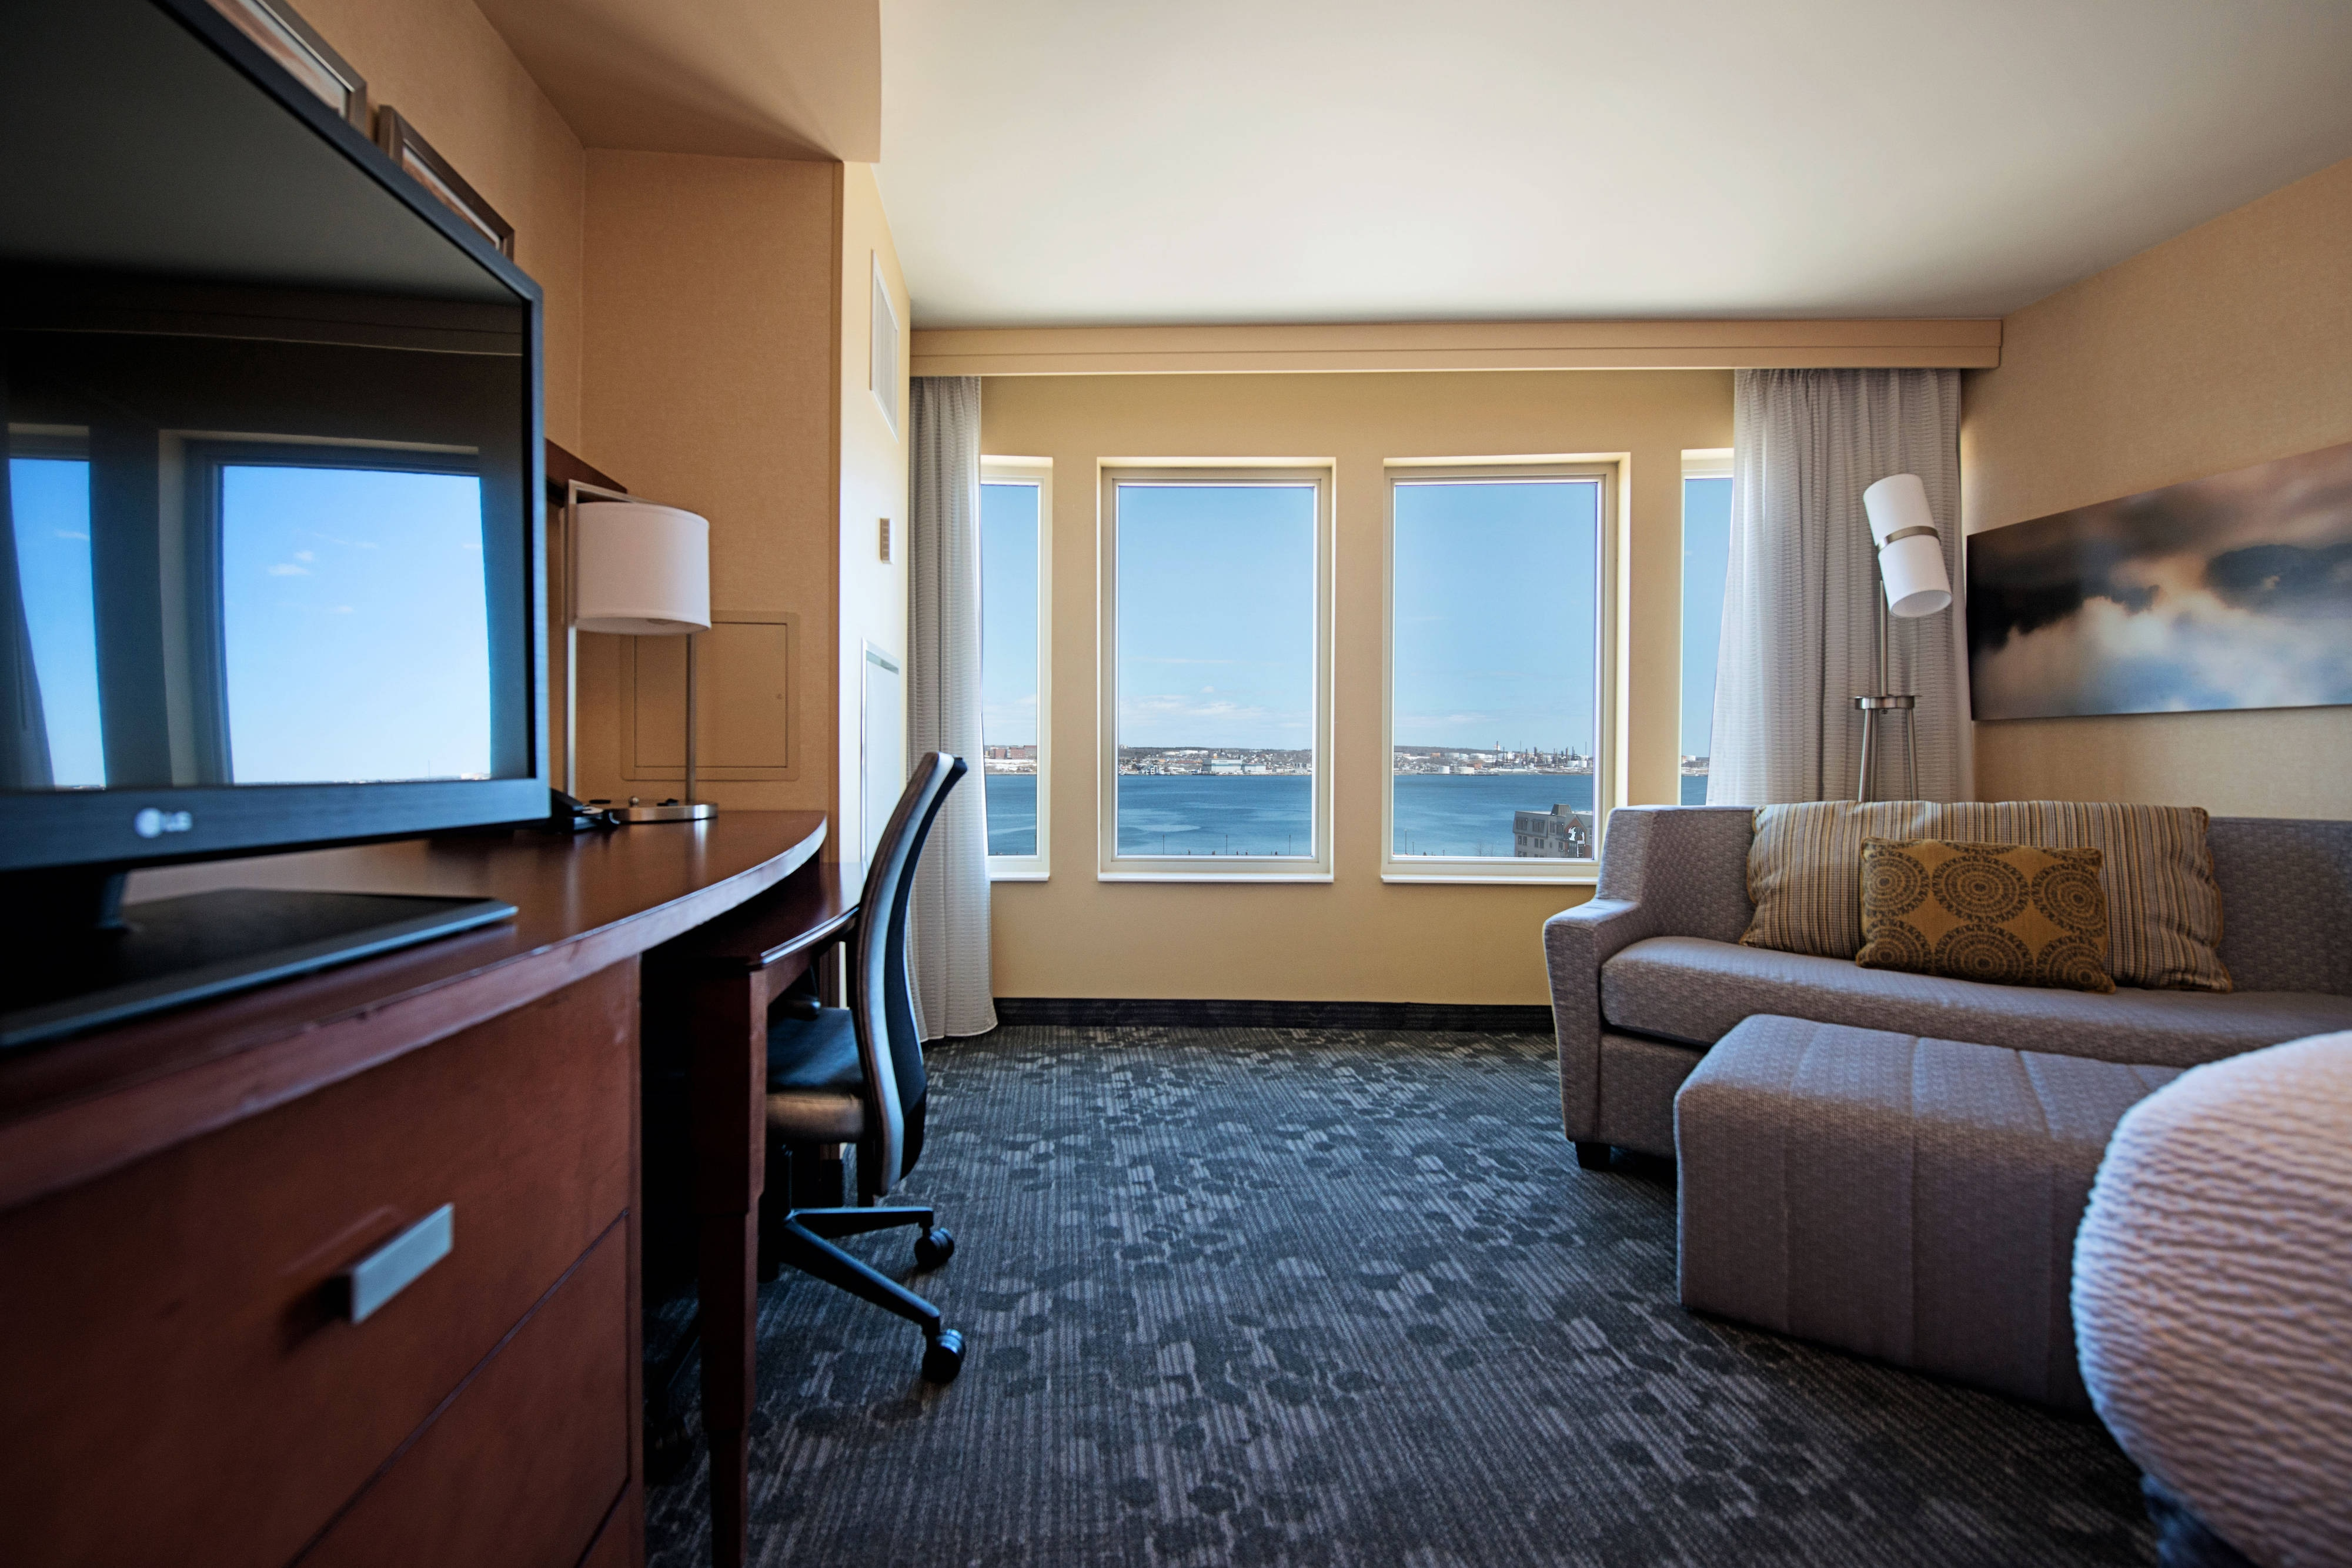 Guest Room, 1 King, Sofabed, Harbourview